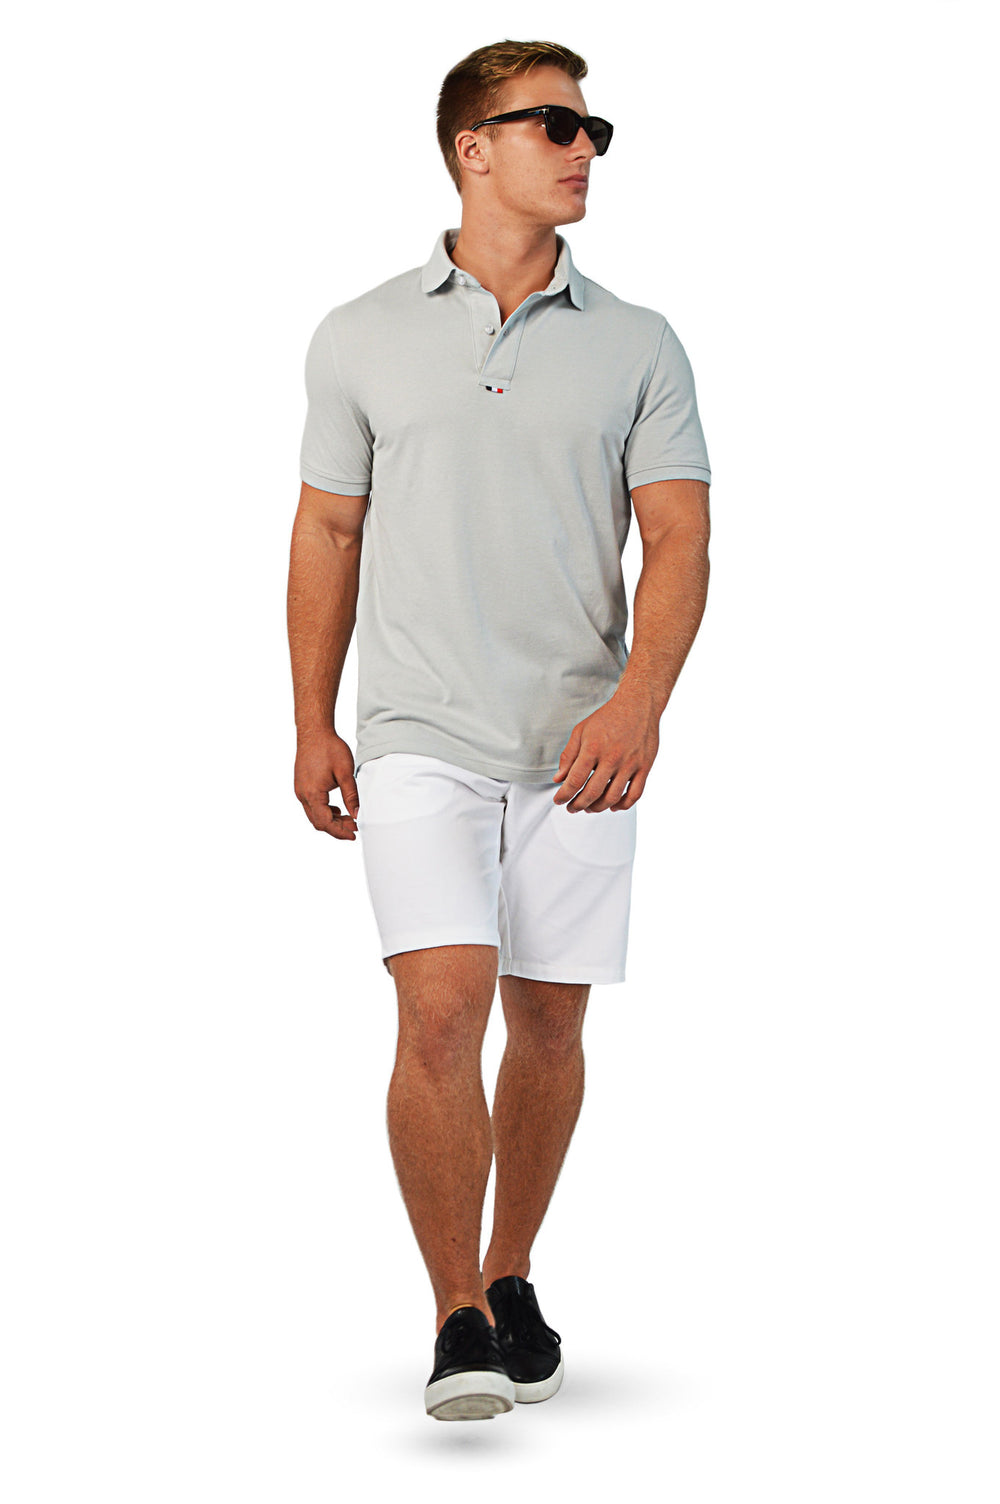 walking wearing grey tailored polo with white tailored shorts